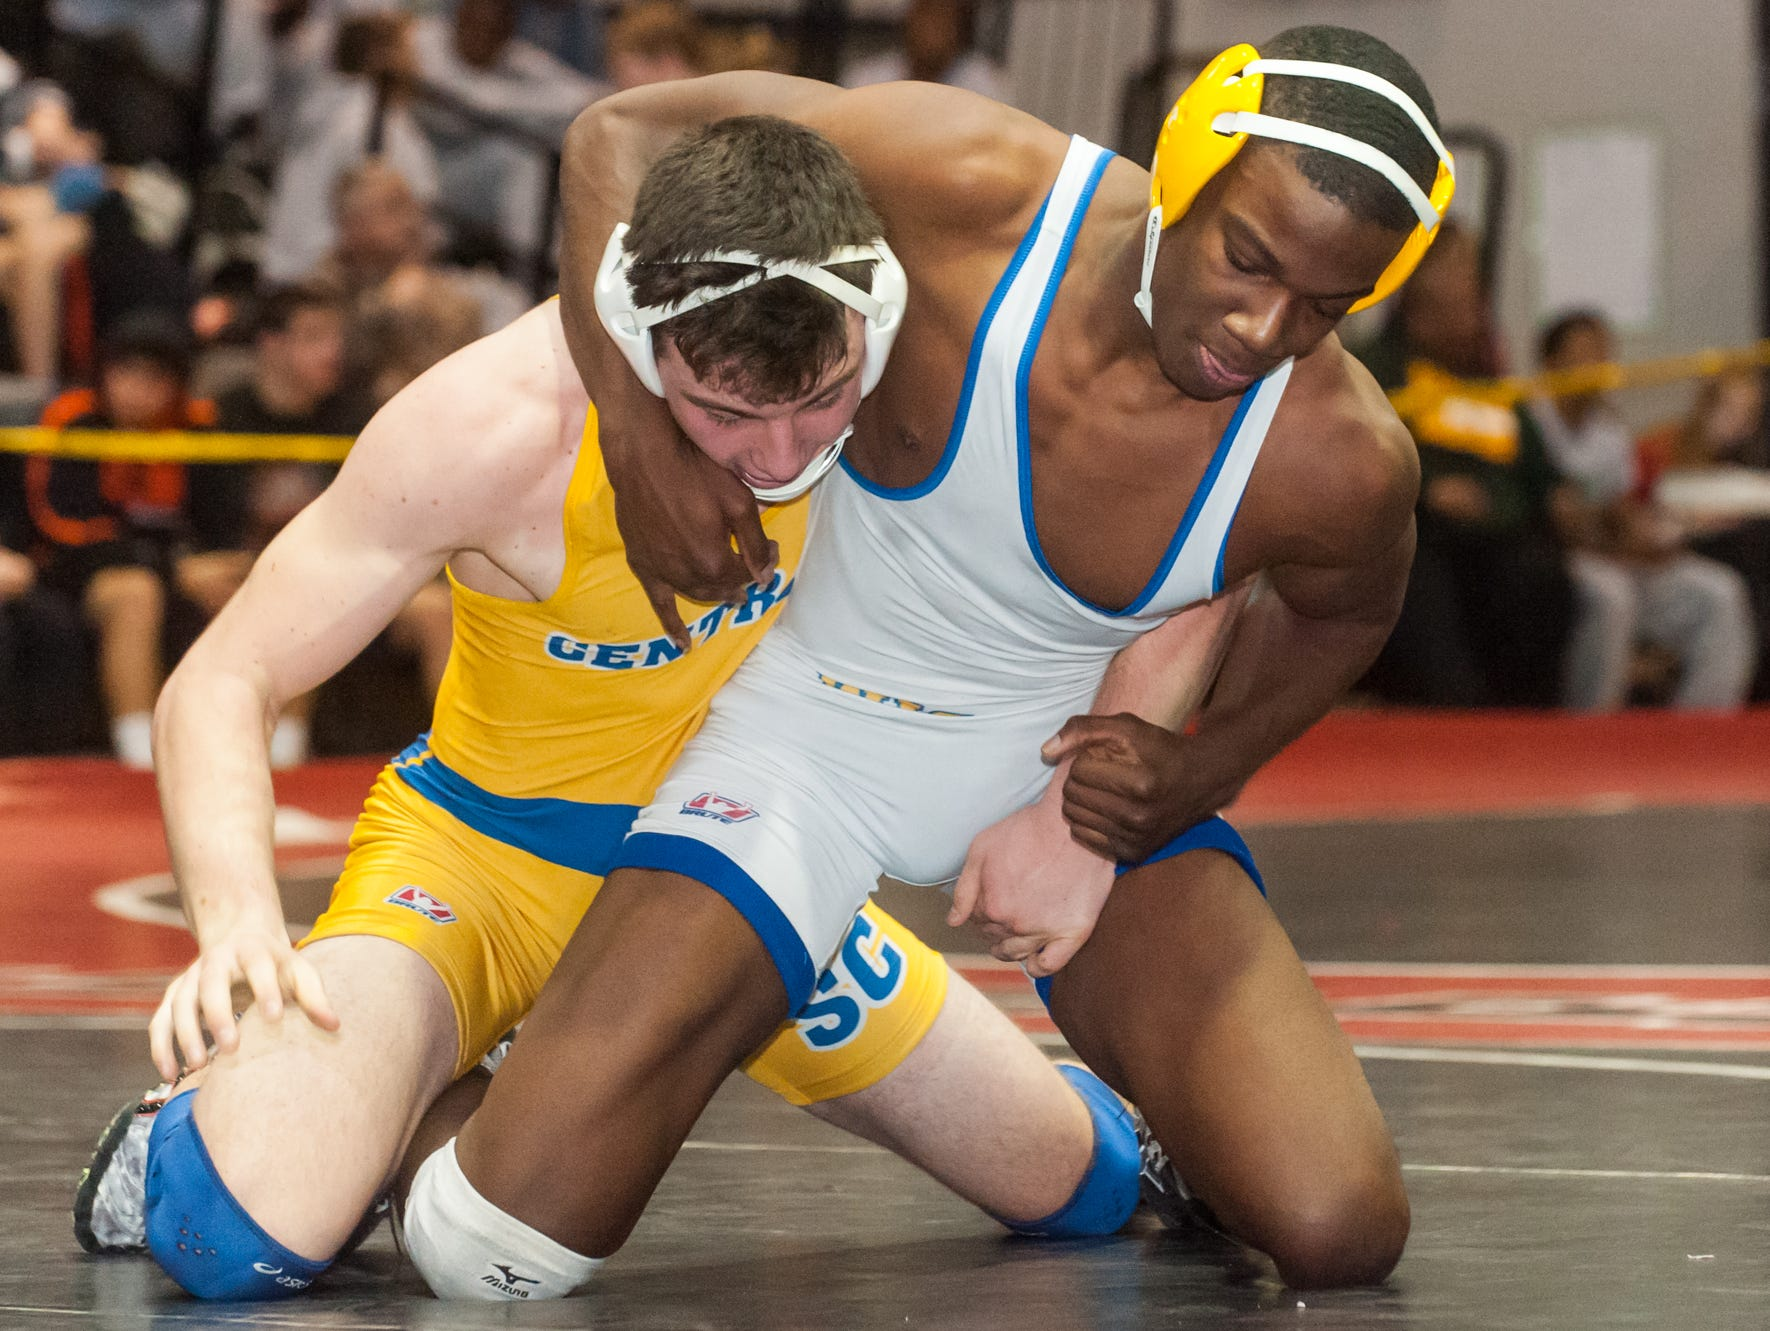 Wicomico's Josh Nichols (170lb) grapples with Sussex Central's Lucas Hudson during the Bob Rowe Memorial Classic.